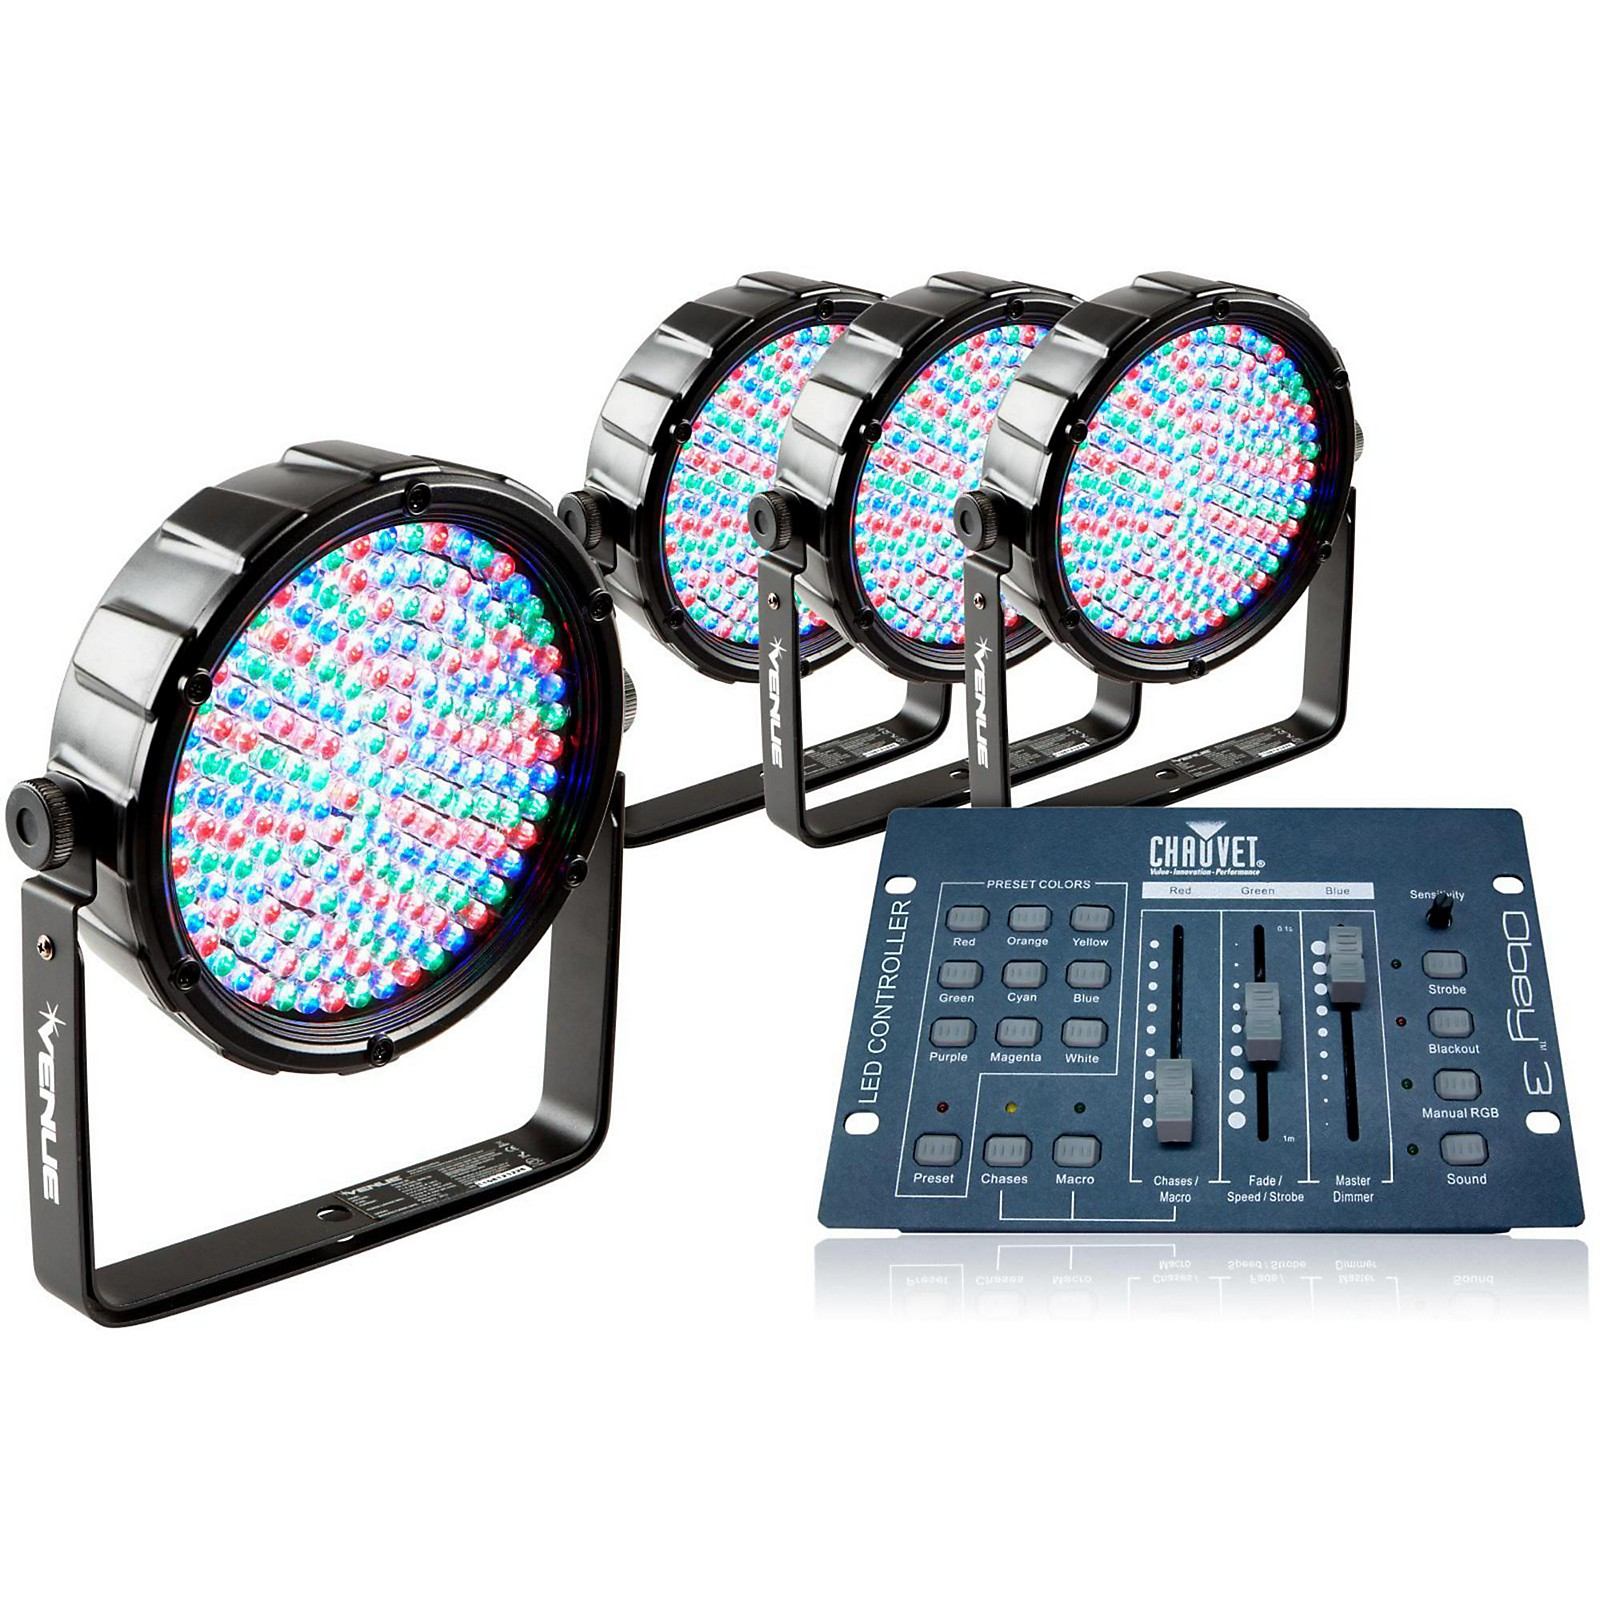 Venue Package of 4 Thinpar64 LED PAR Lights with Obey 3 Controller